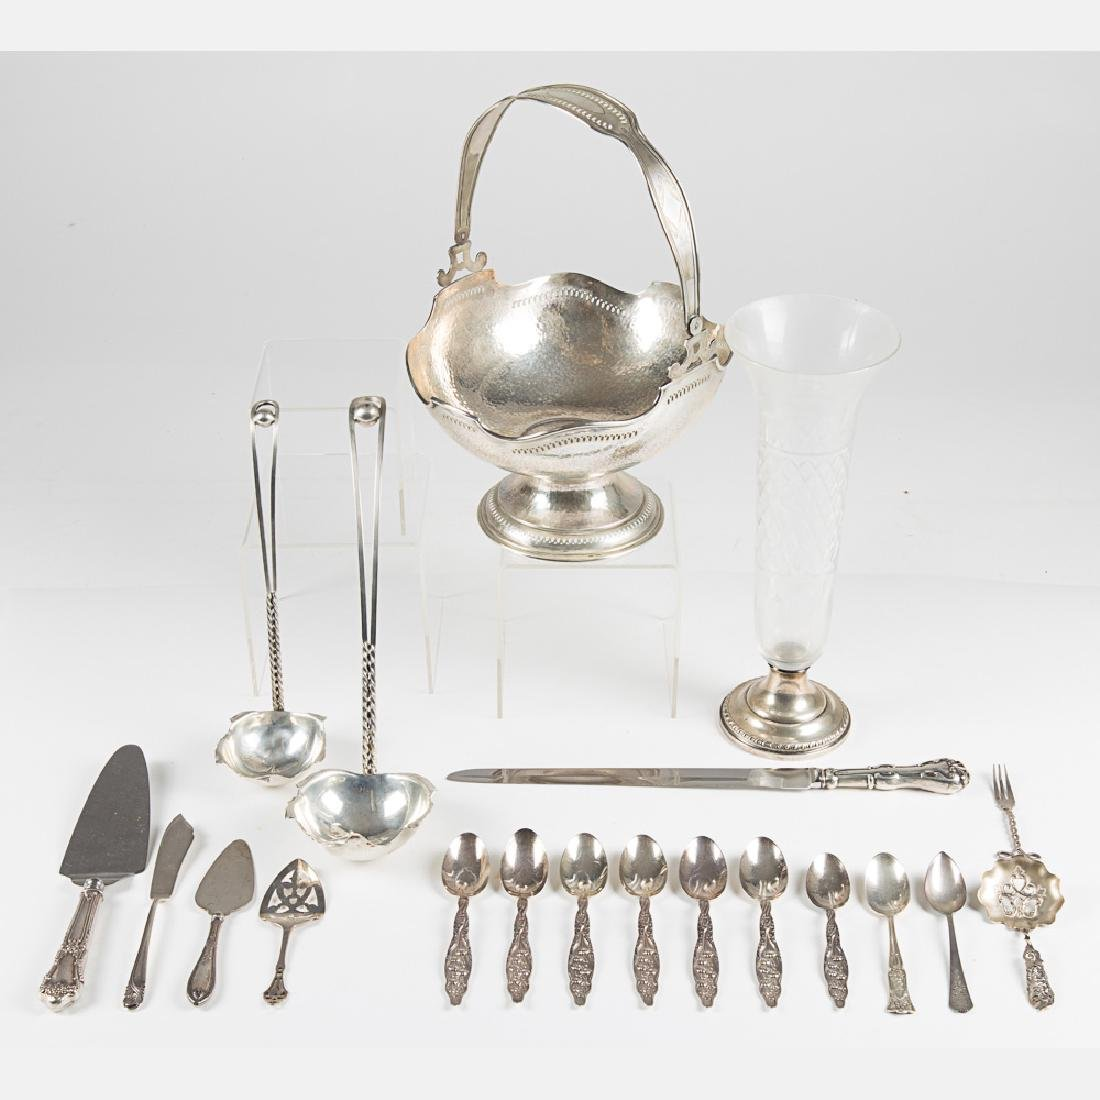 A Miscellaneous Collection of Sterling Silver Flatware,